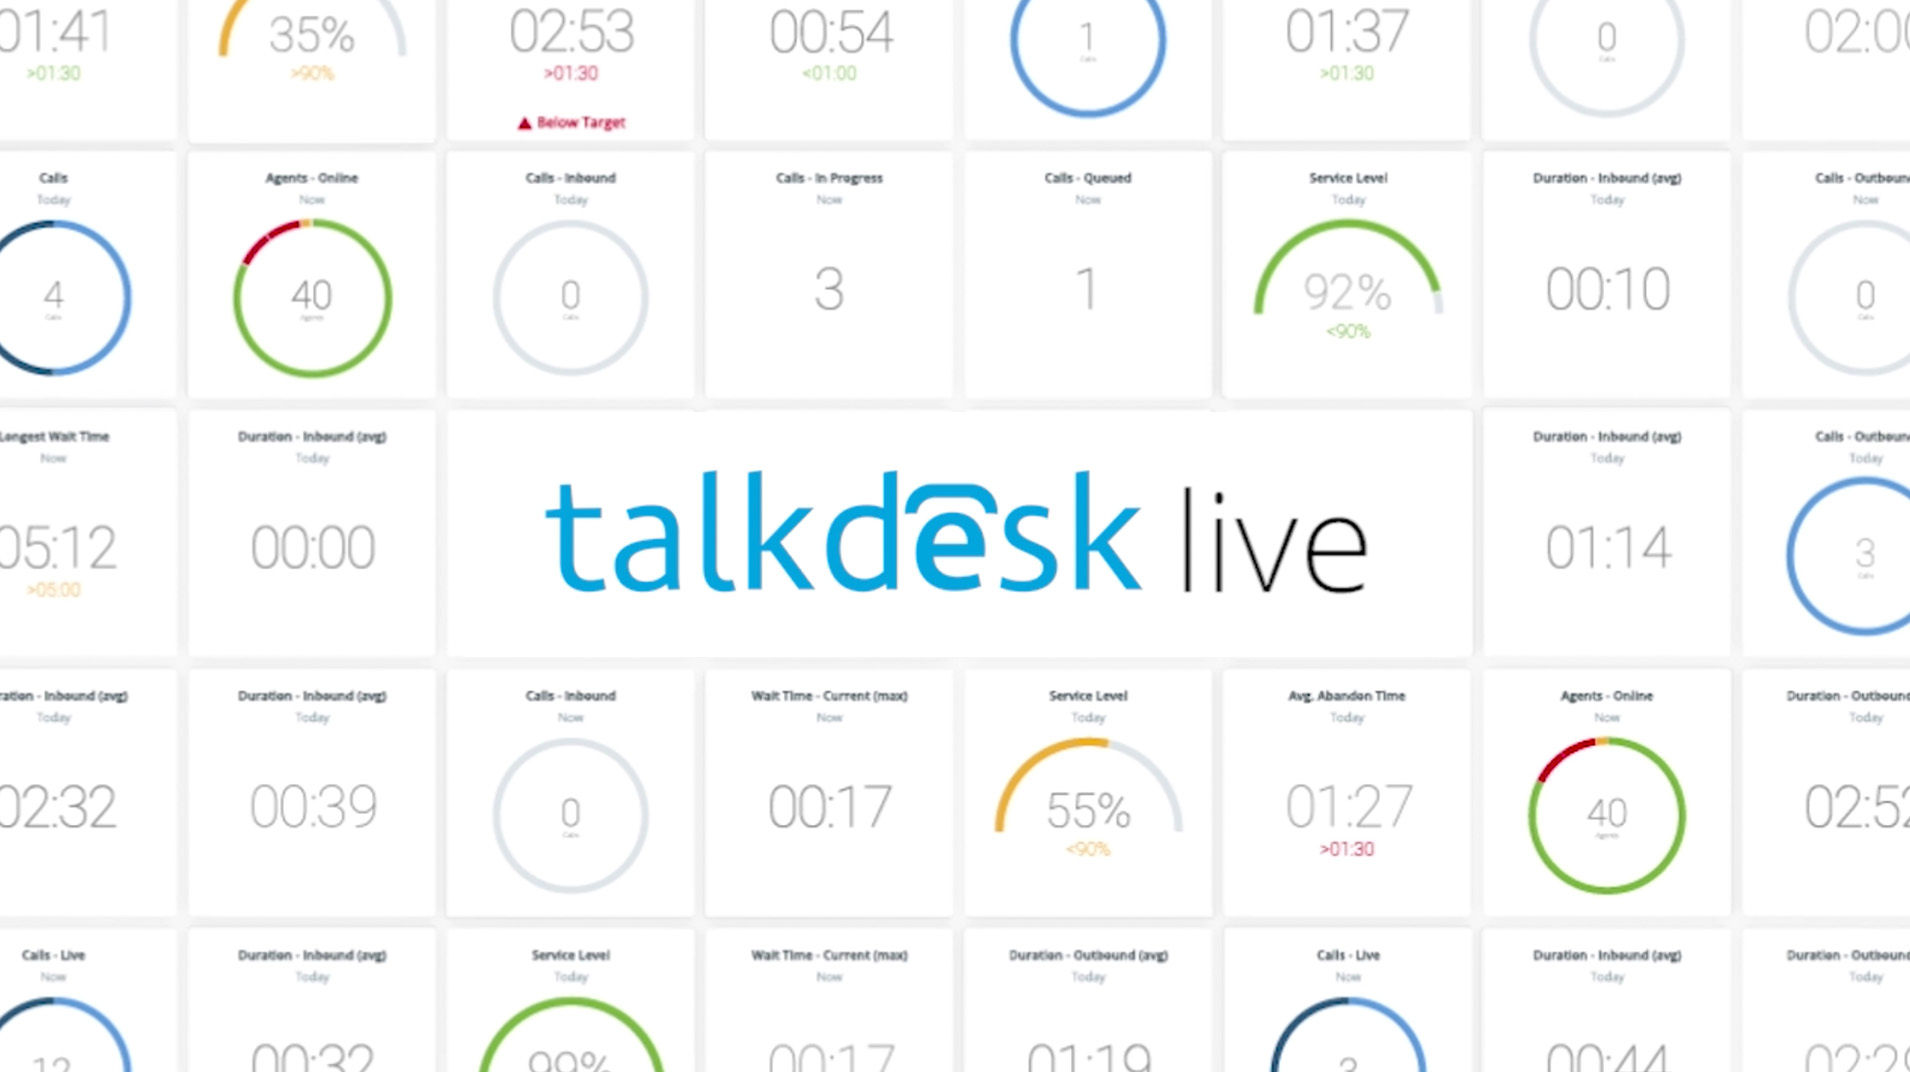 Talkdesk Live